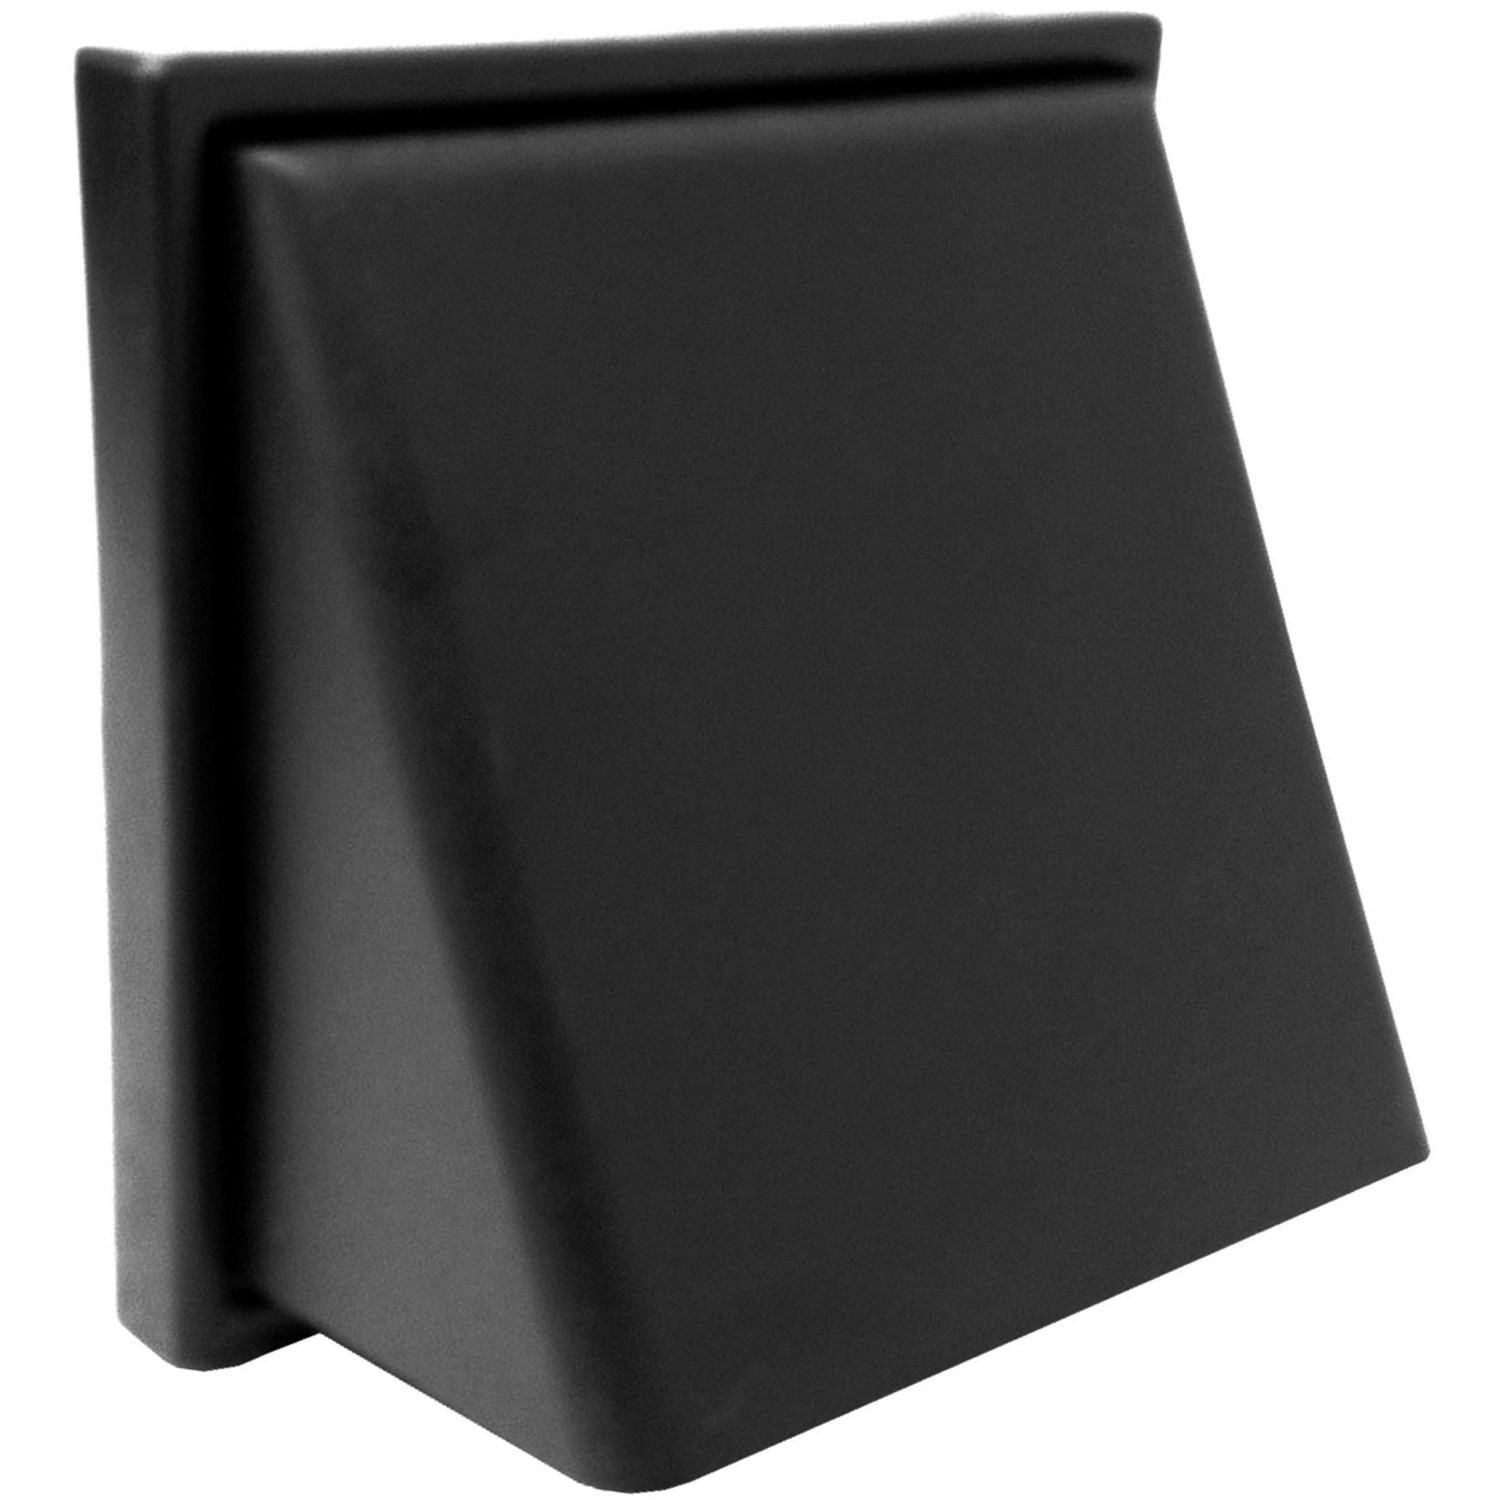 Manrose Round Ducting Pipe wall Hood Cowled Outlet - Black, 150mm